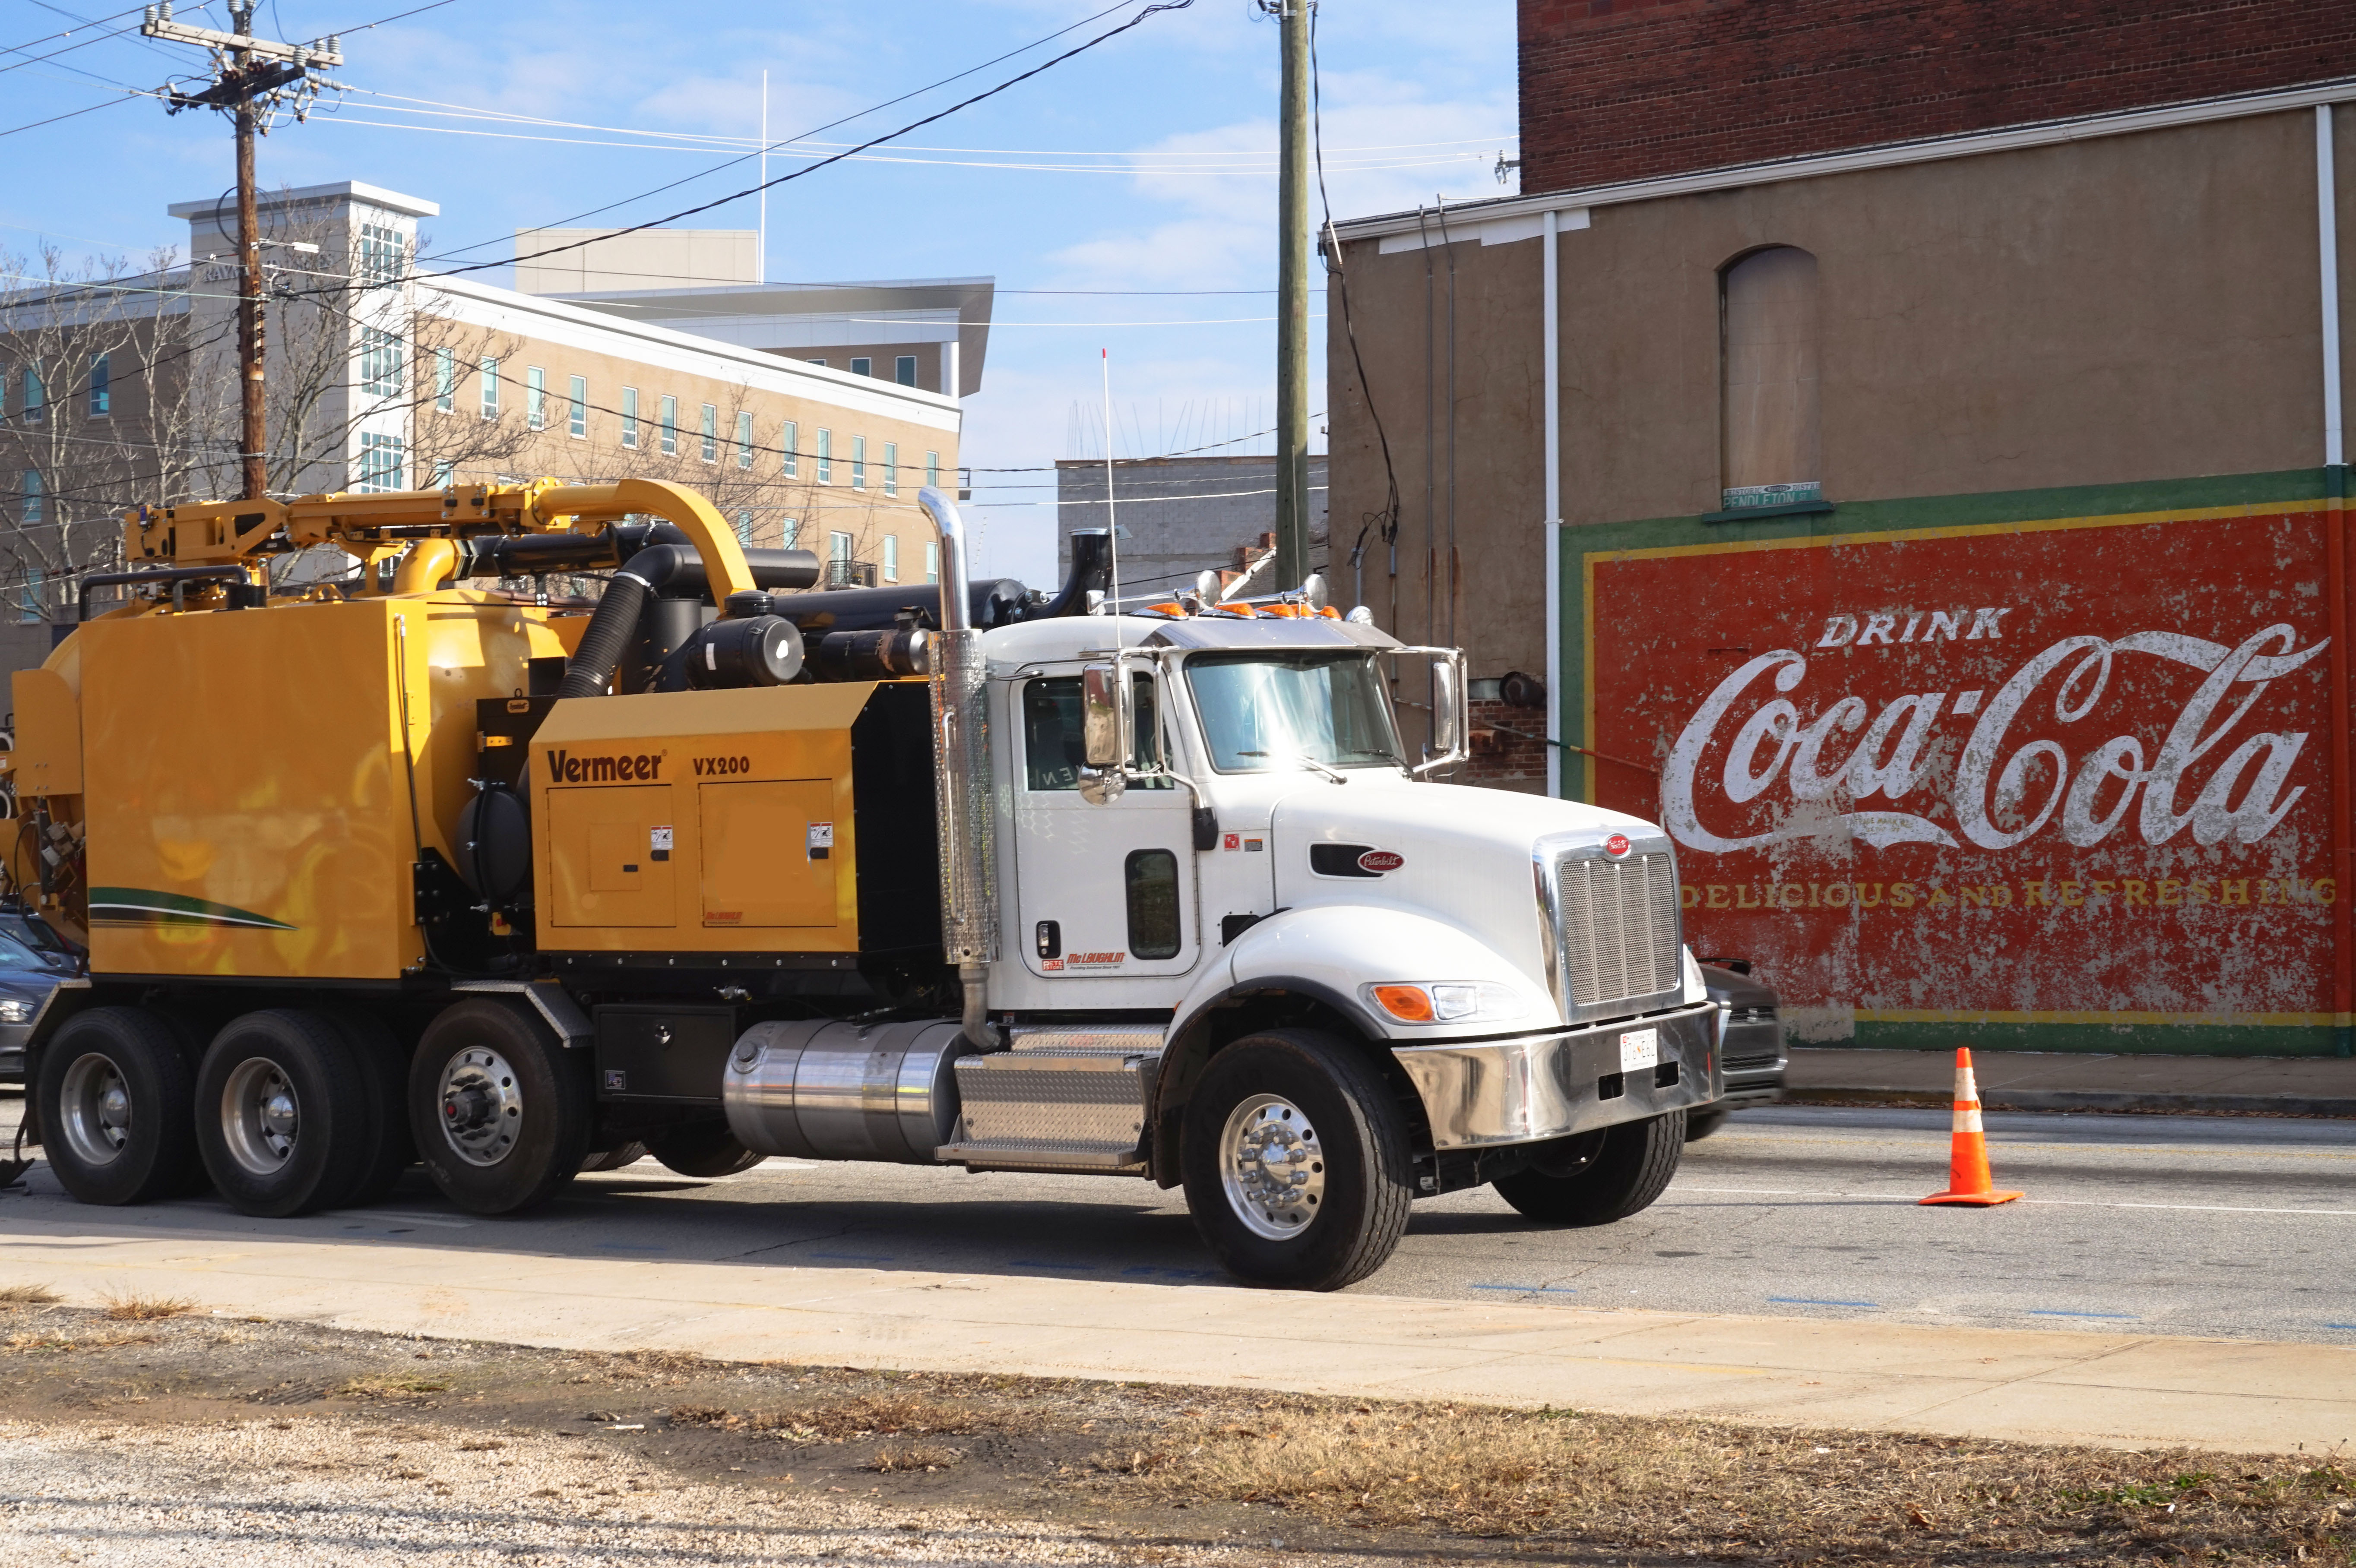 Mega Vacuum excavator in font of coke sign downtown greenville